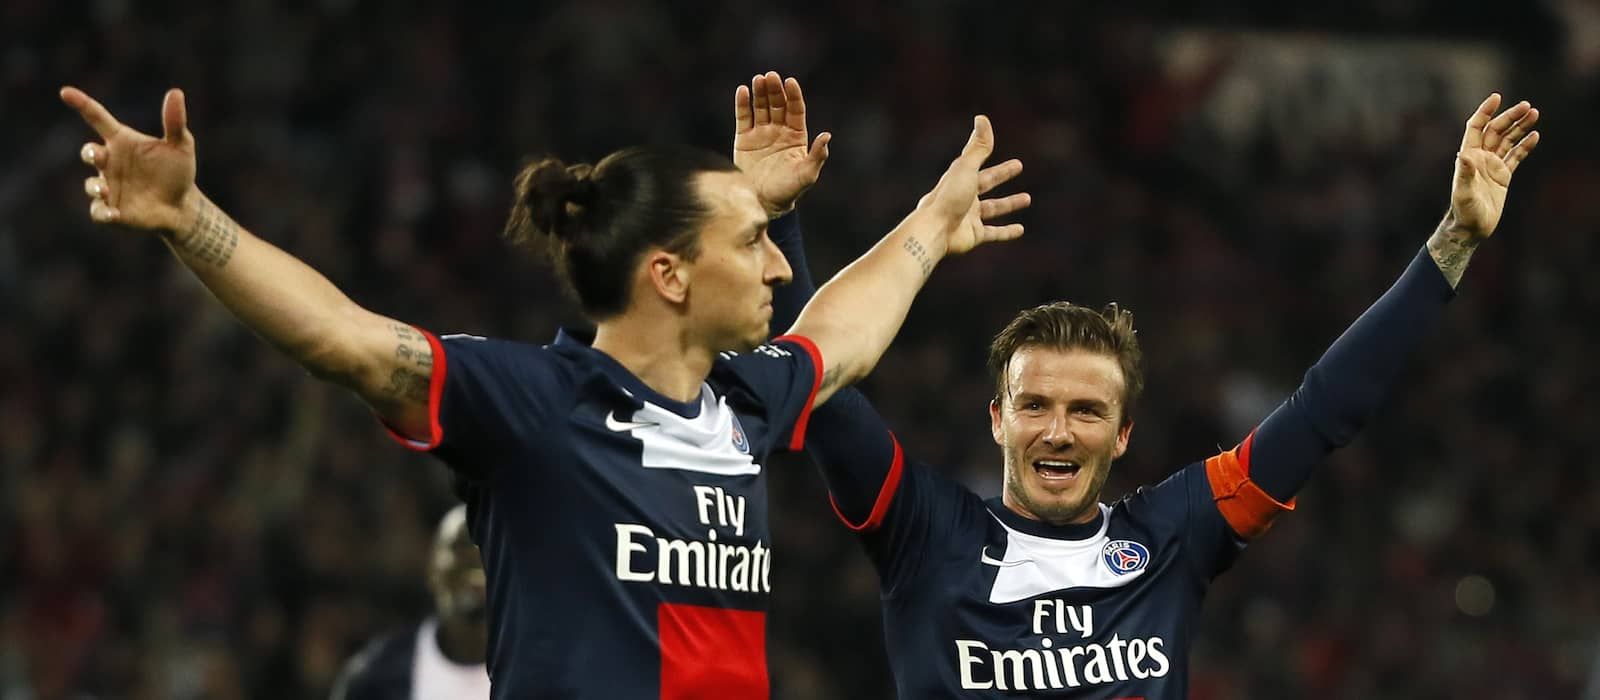 David Beckham and Zlatan Ibrahimovic agree on England vs Sweden World Cup wager